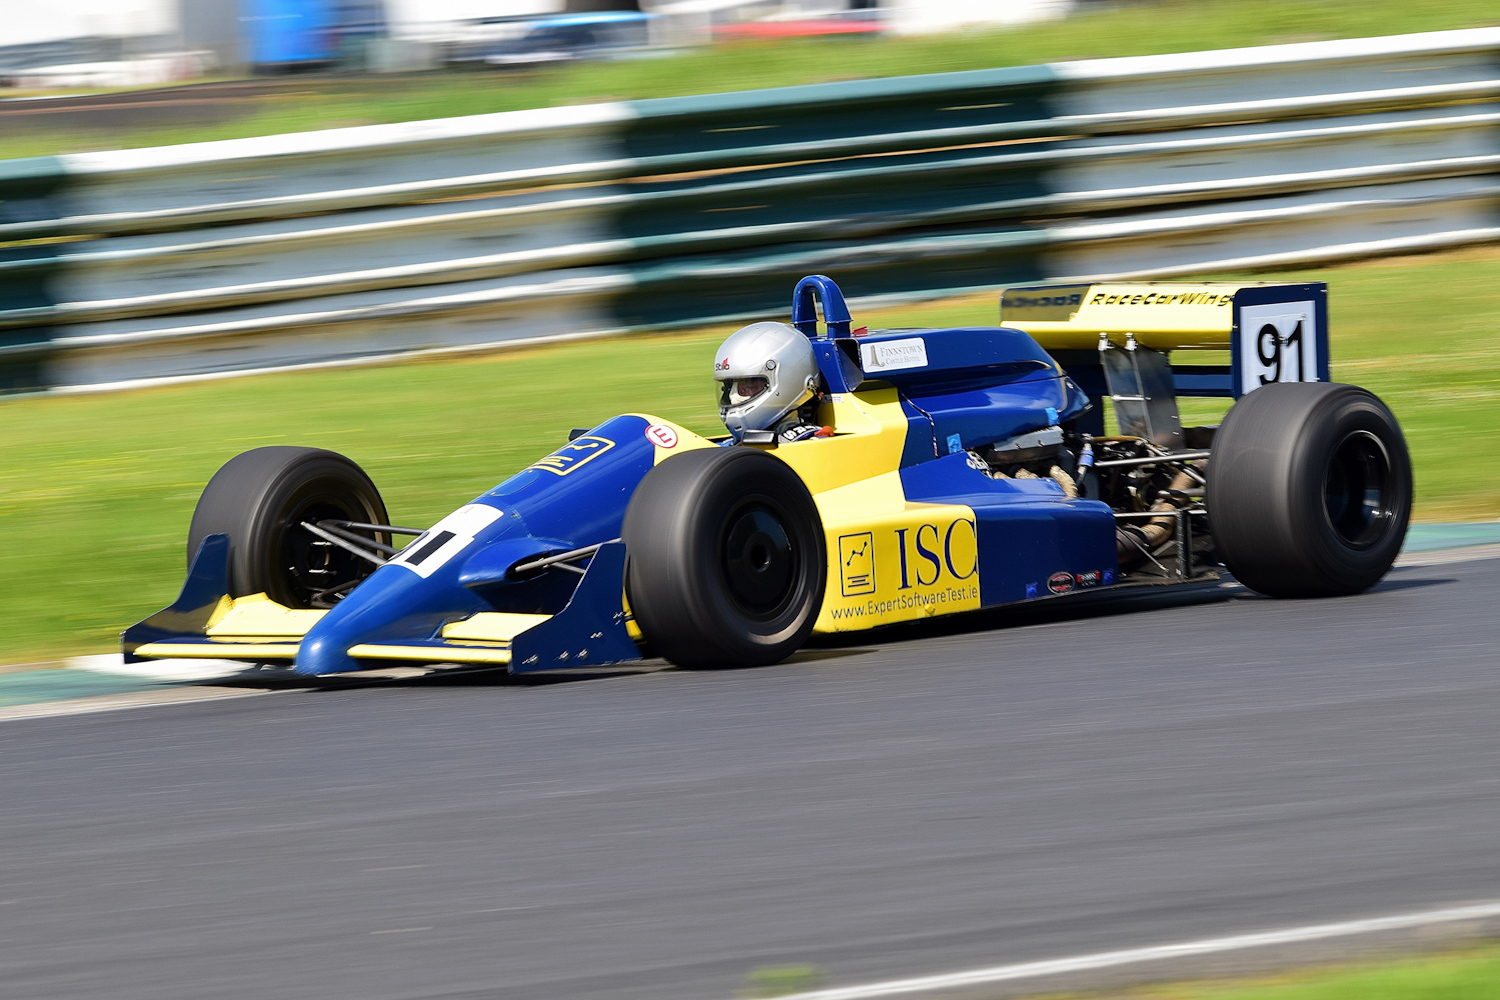 Car News | Mondello reopens with test weekend | CompleteCar.ie